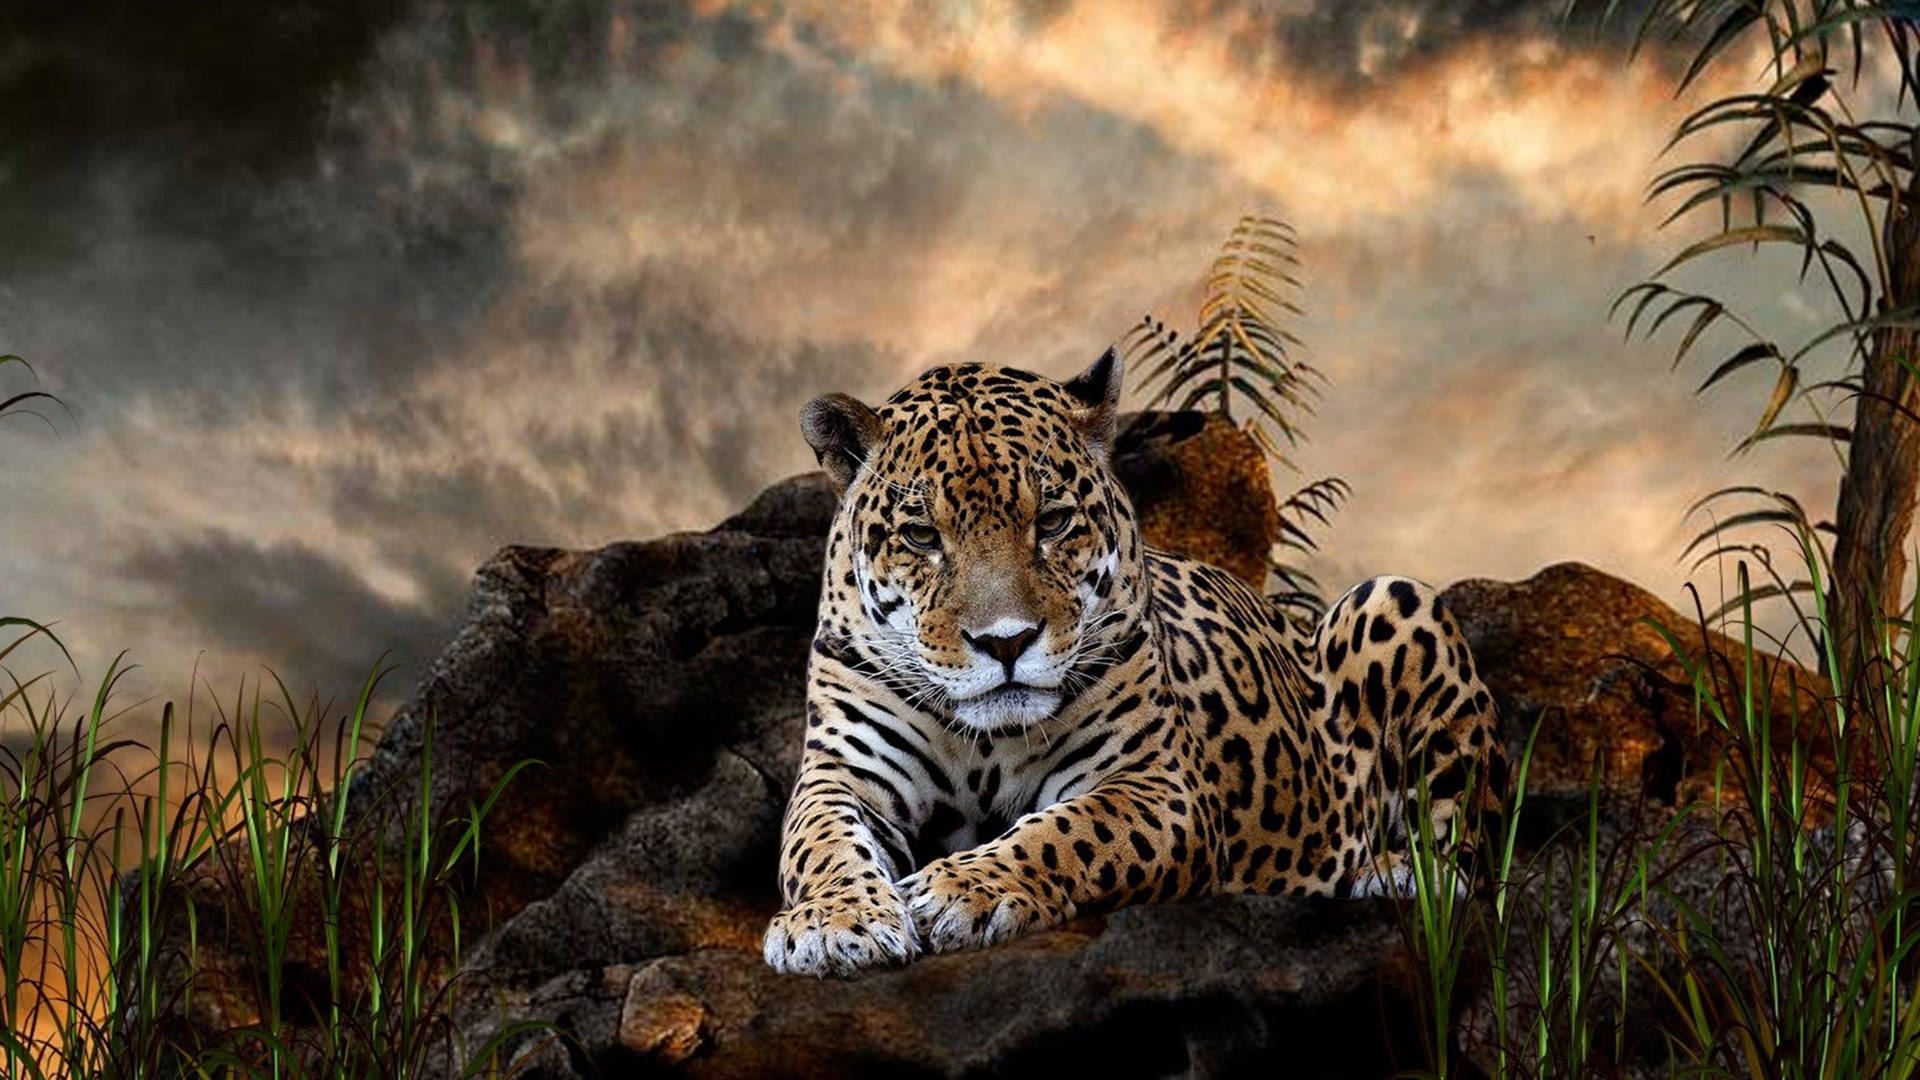 Leopard wallpapers hd pixelstalk net - Hd wilderness wallpapers ...